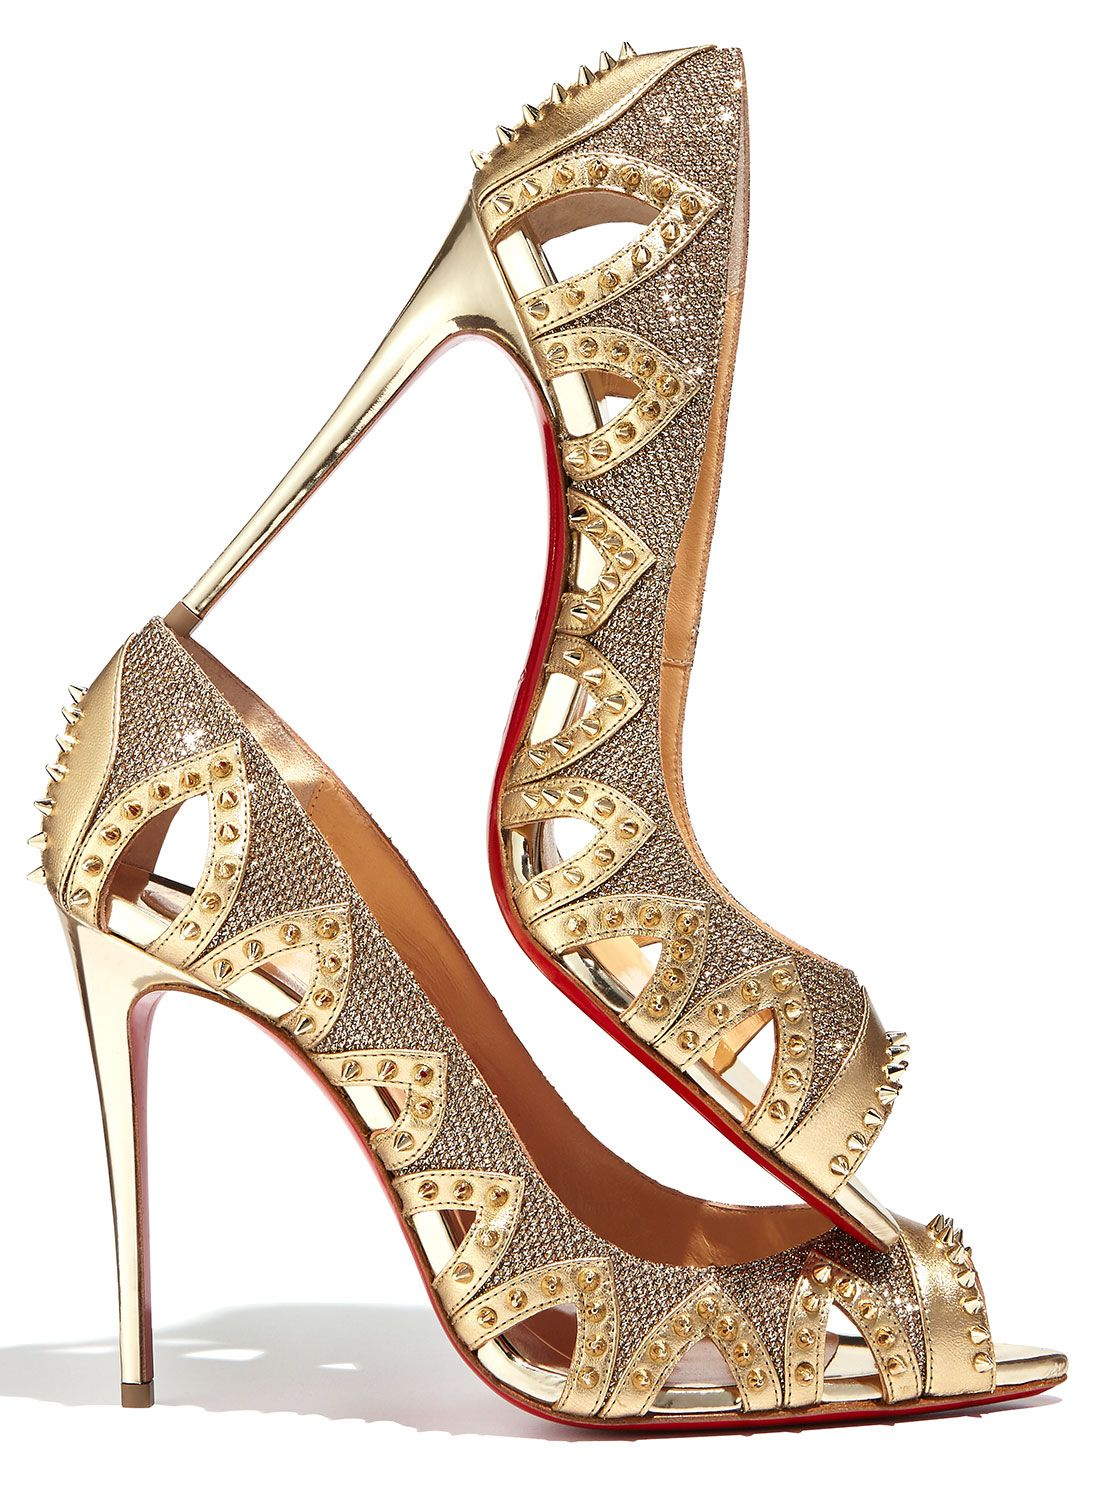 CHRISTIAN LOUBOUTIN Pinder City Spiked Red Sole Pump, Gold